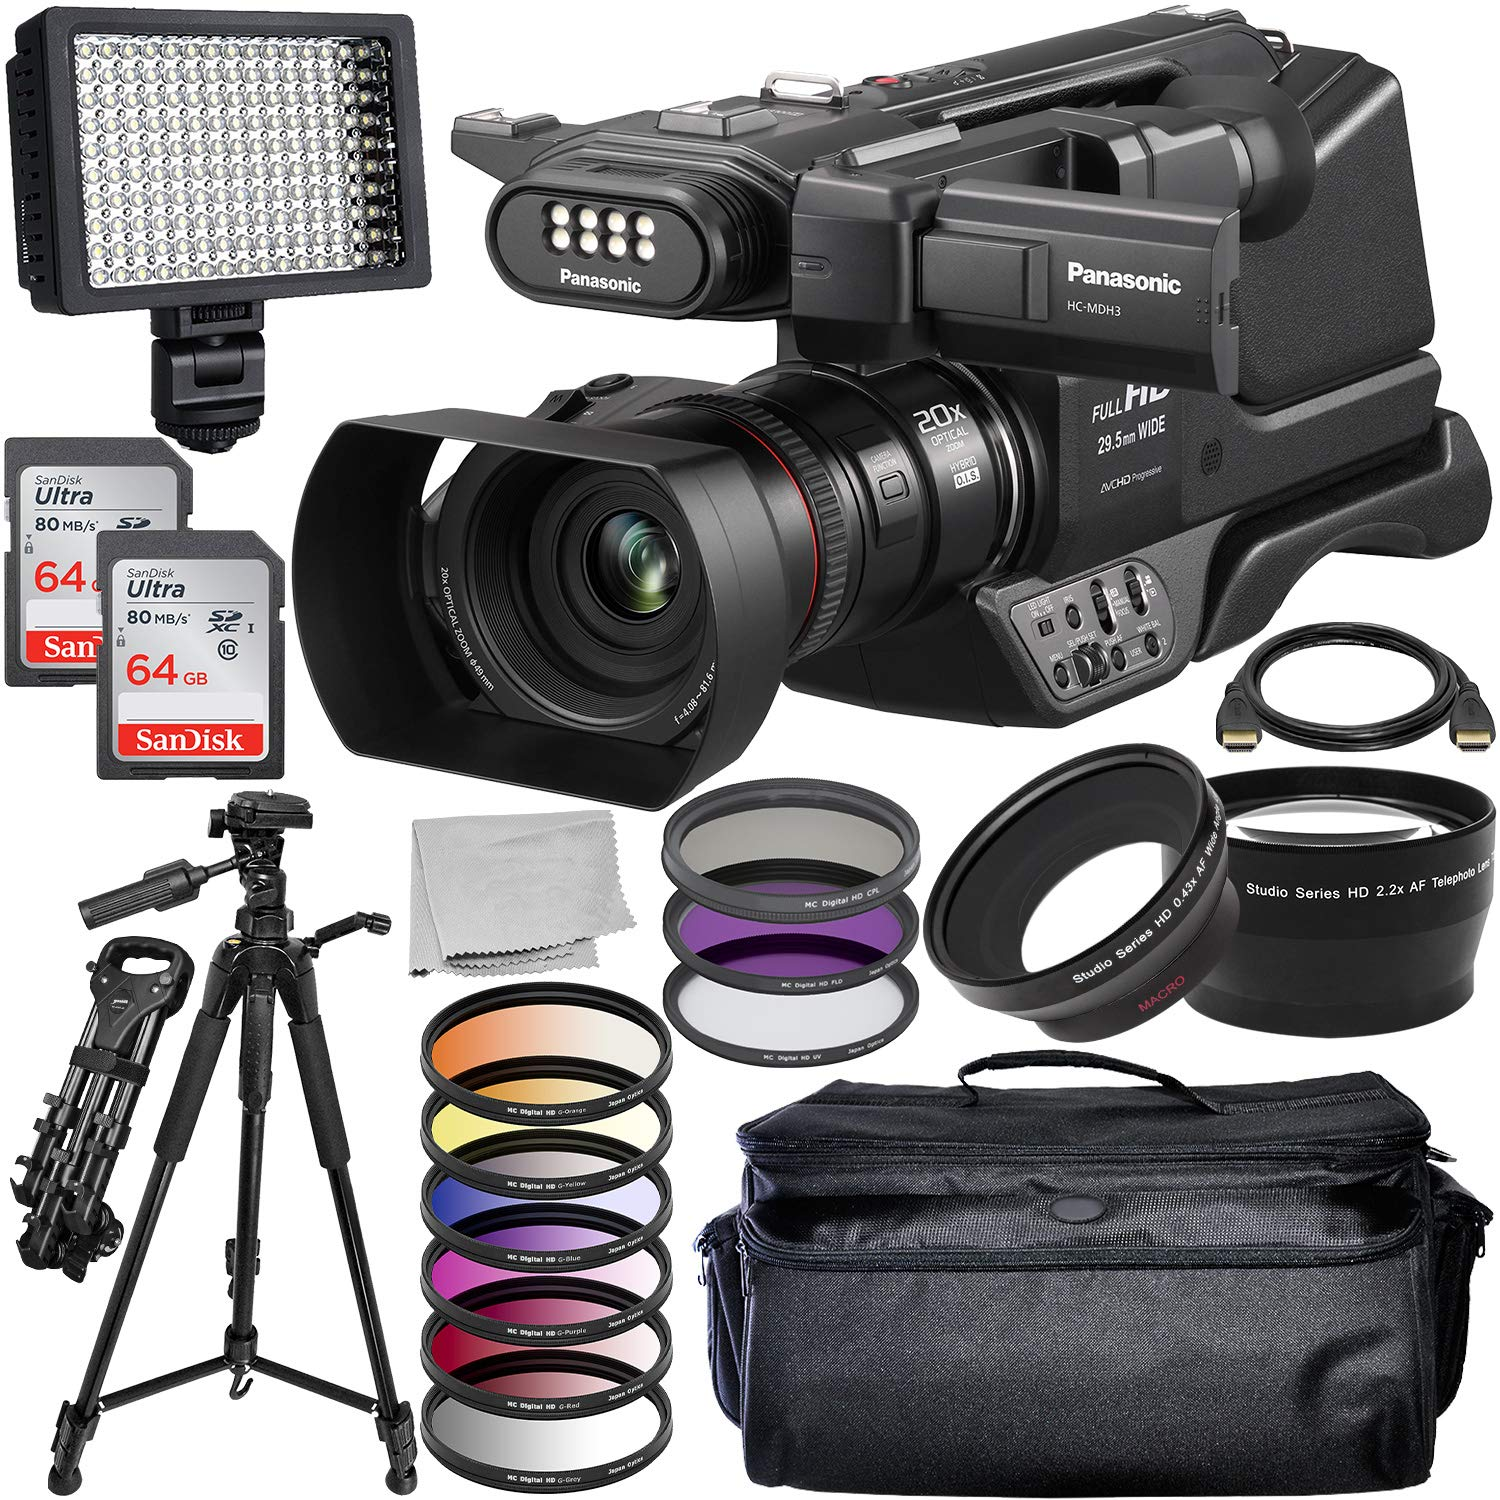 Panasonic HC-MDH3 AVCHD Shoulder Mount Camcorder with LCD Touchscreen & LED Light Elite Bundle Includes: 2X SanDisk Ultra 64GB Memory Cards, 160 LED Video Light, 3PC Filter Kit, and Much More